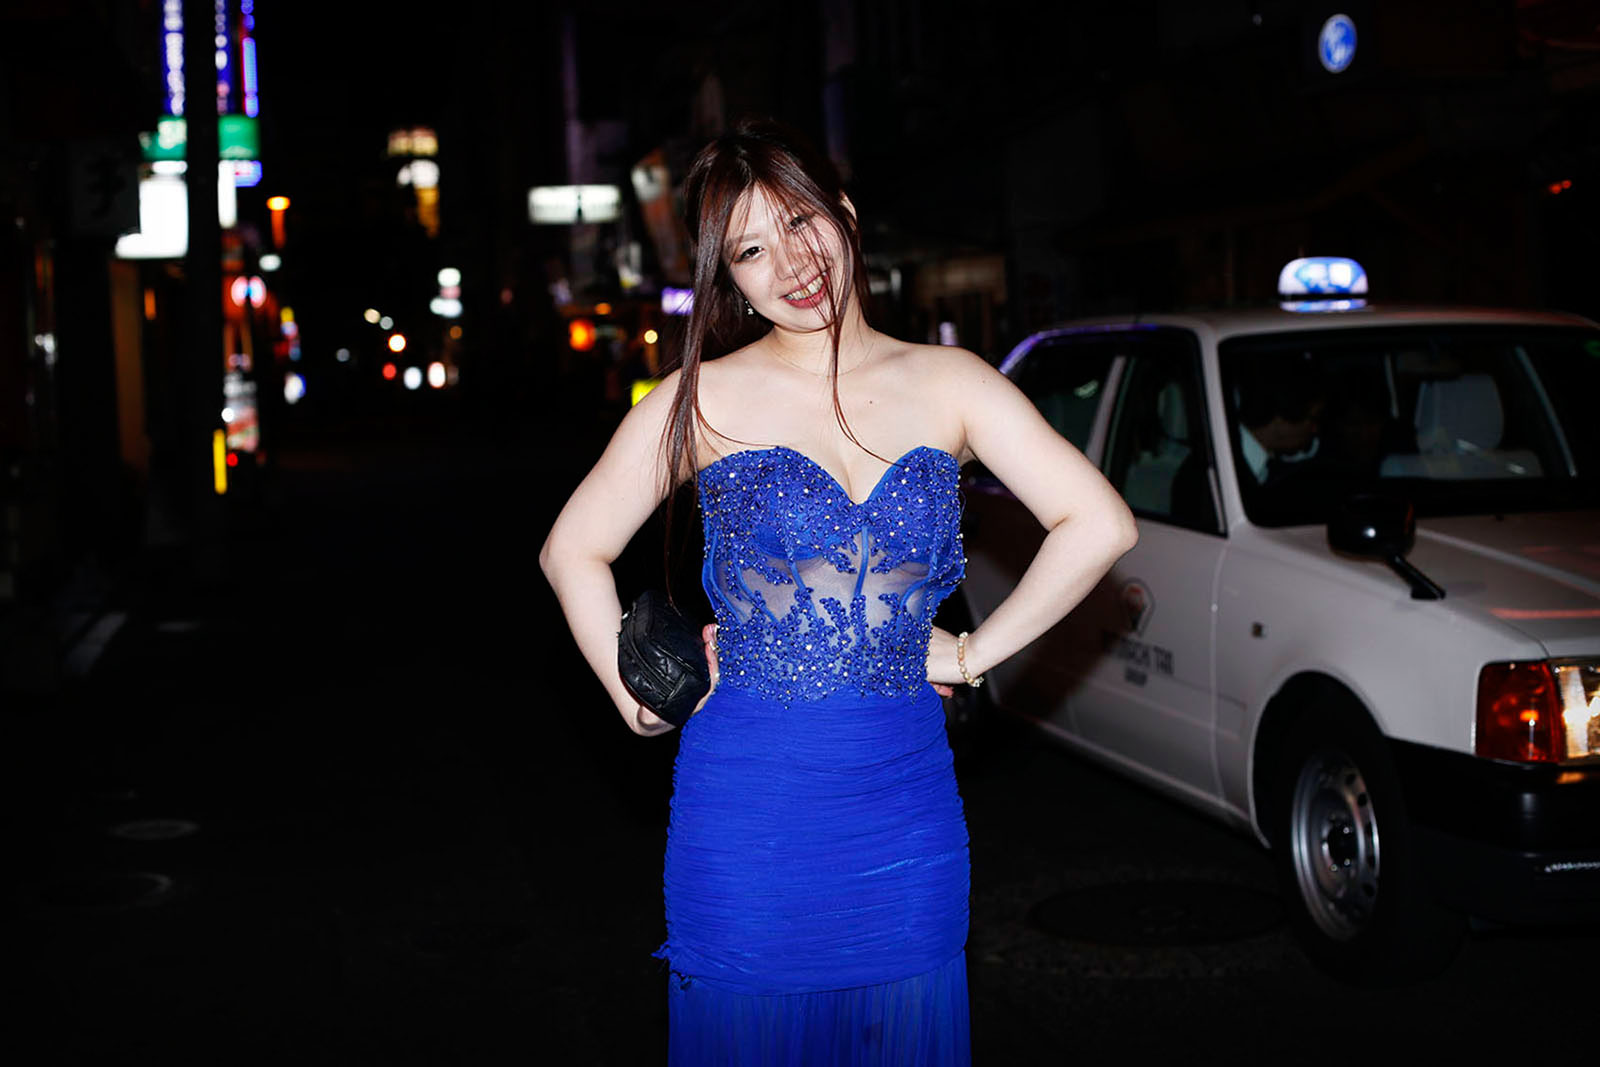 A girl in a blue dress Sasebo, Japan 2015